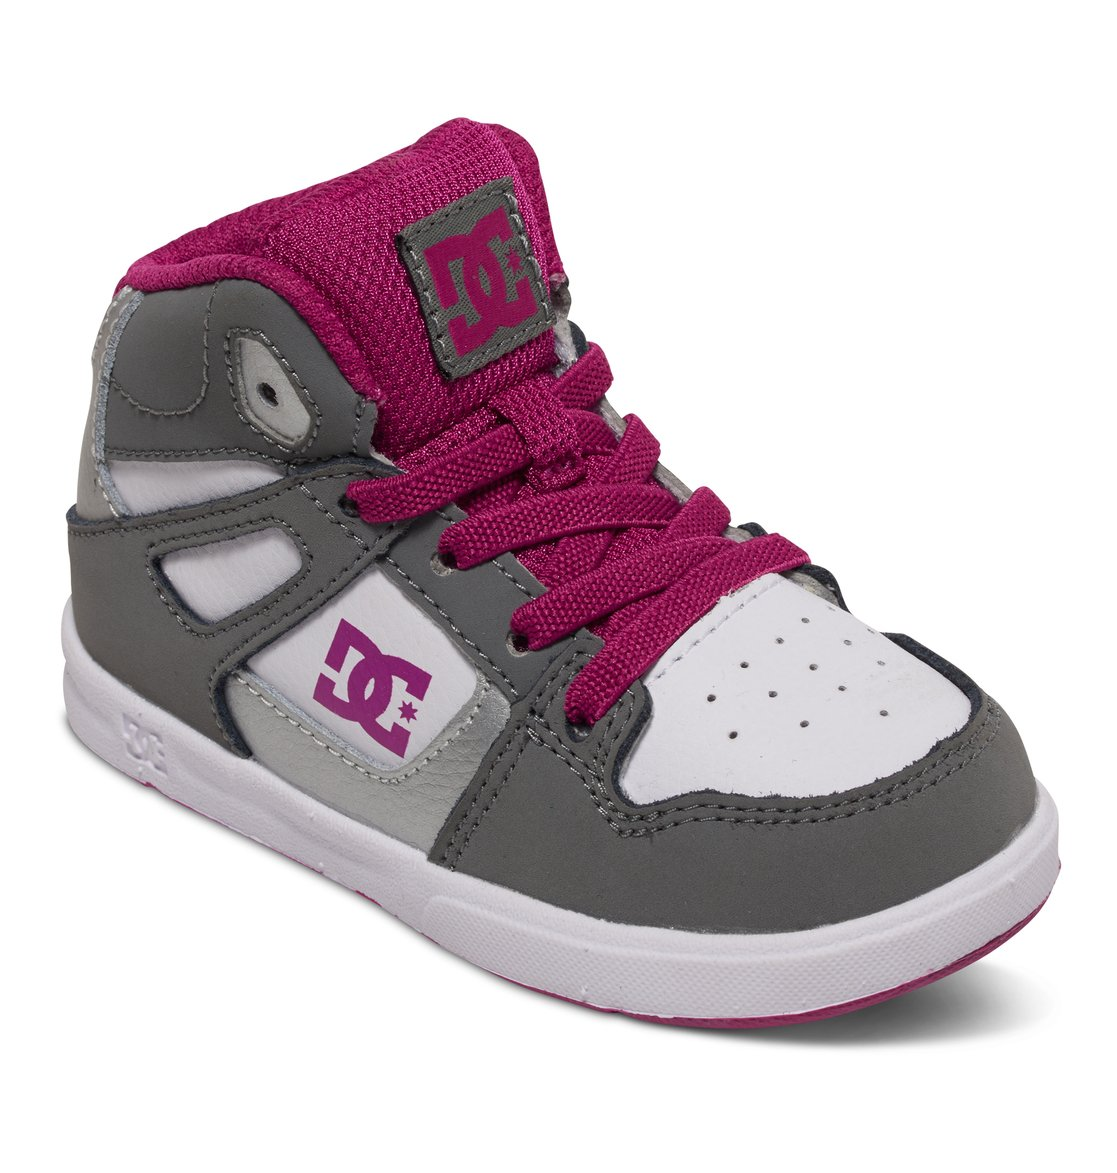 Shoes Toddler Rebound High Top